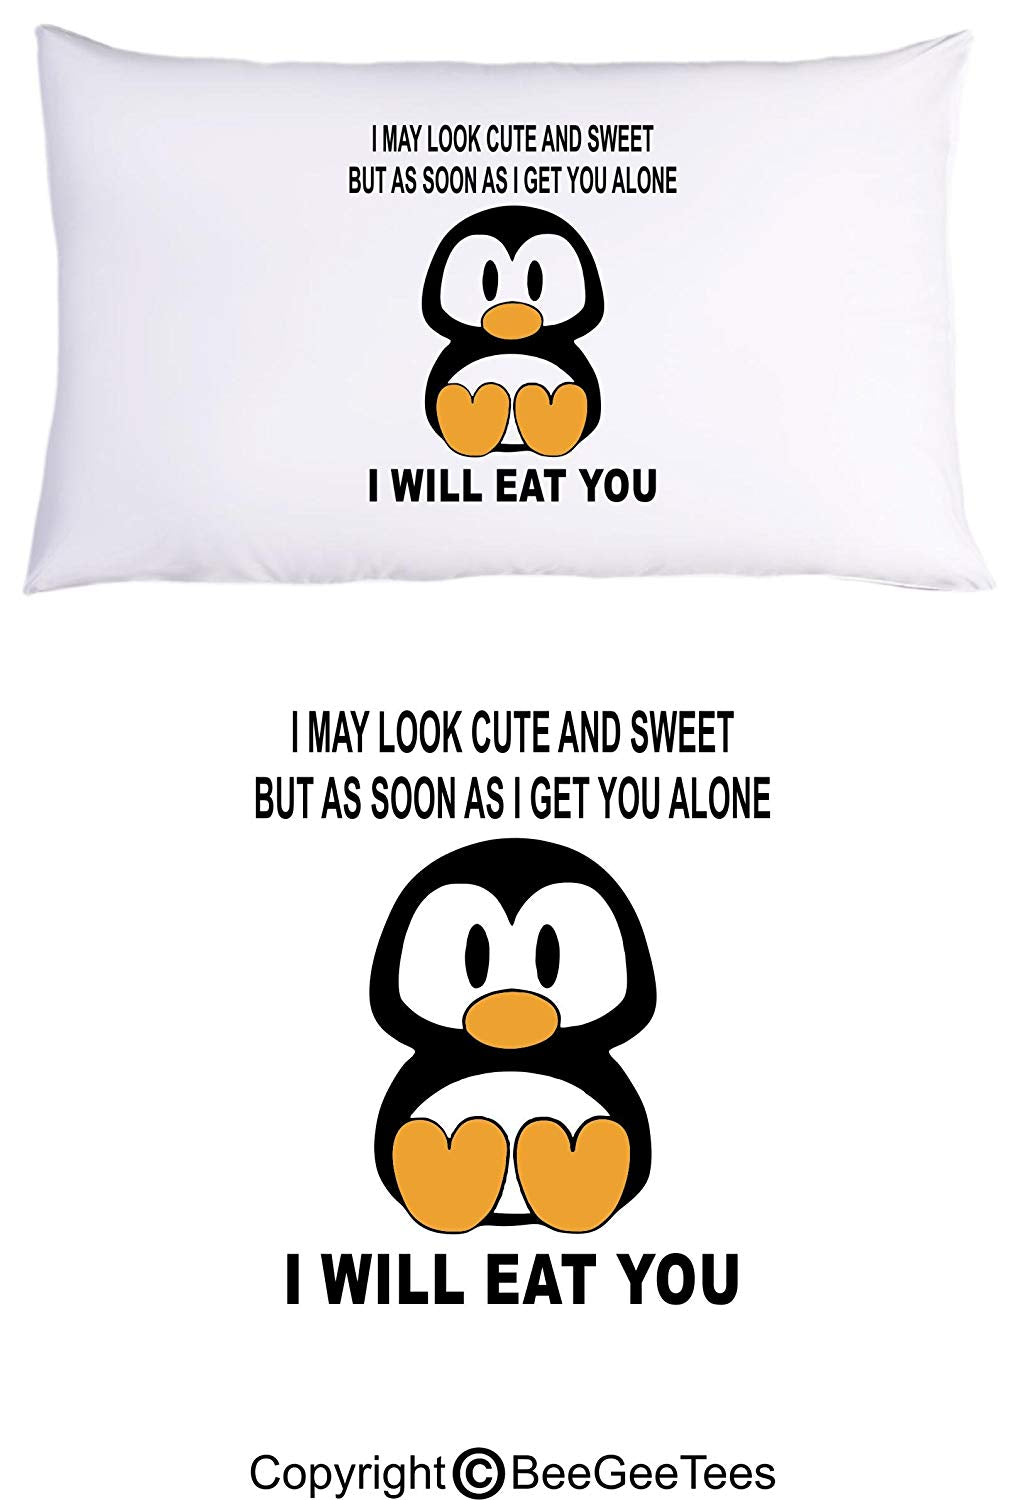 I May Look Cute and Sweet But As Soon As I Get You Alone I Will Eat You Funny Penguin Pillowcase by BeeGeeTees (1 Queen Pillowcase)